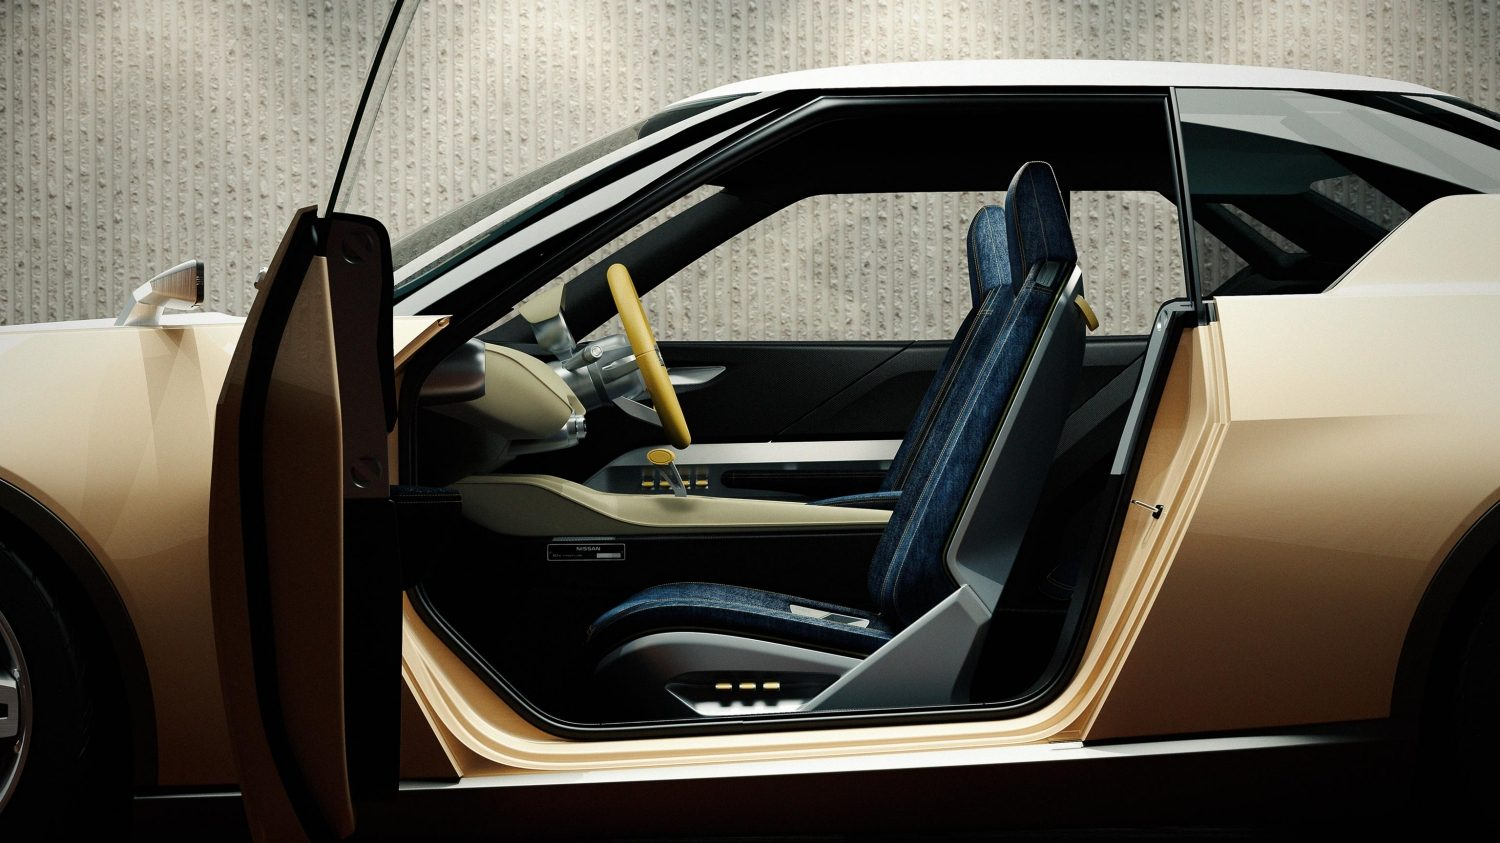 Nissan IDX Freeflow Concept. Gallery profile passenger-side open door.